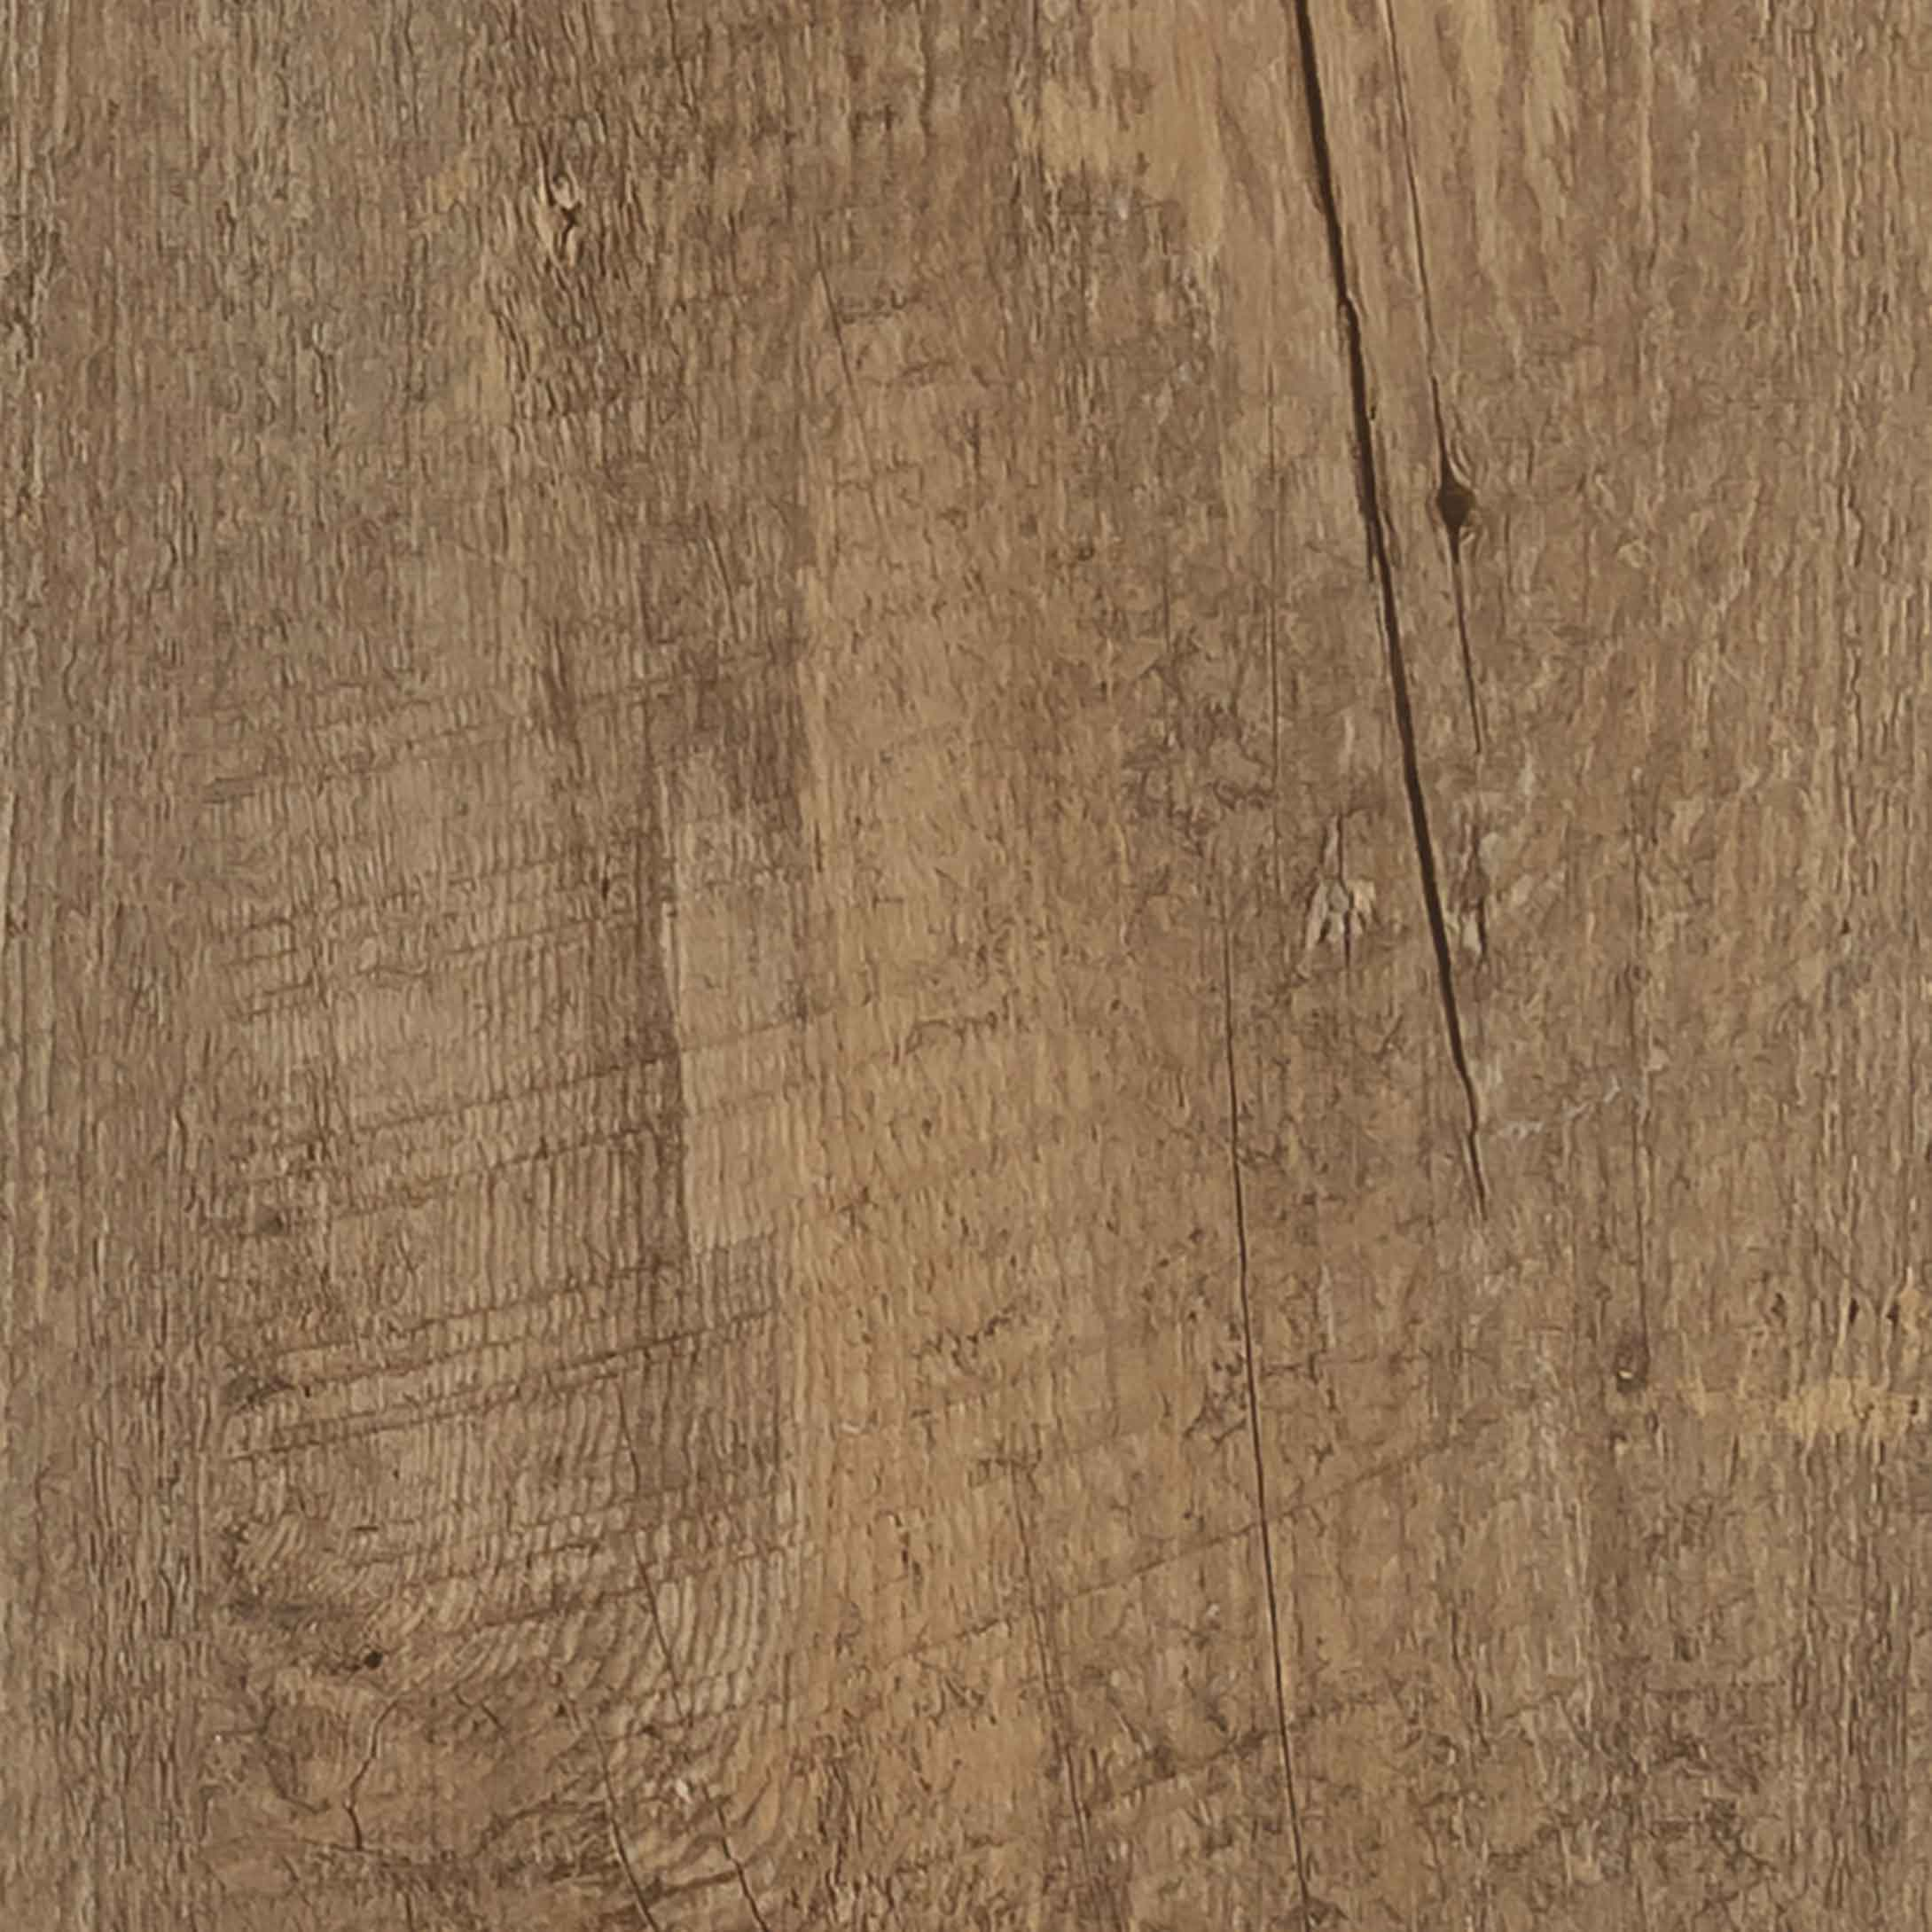 Rustic Oak, brown 2842